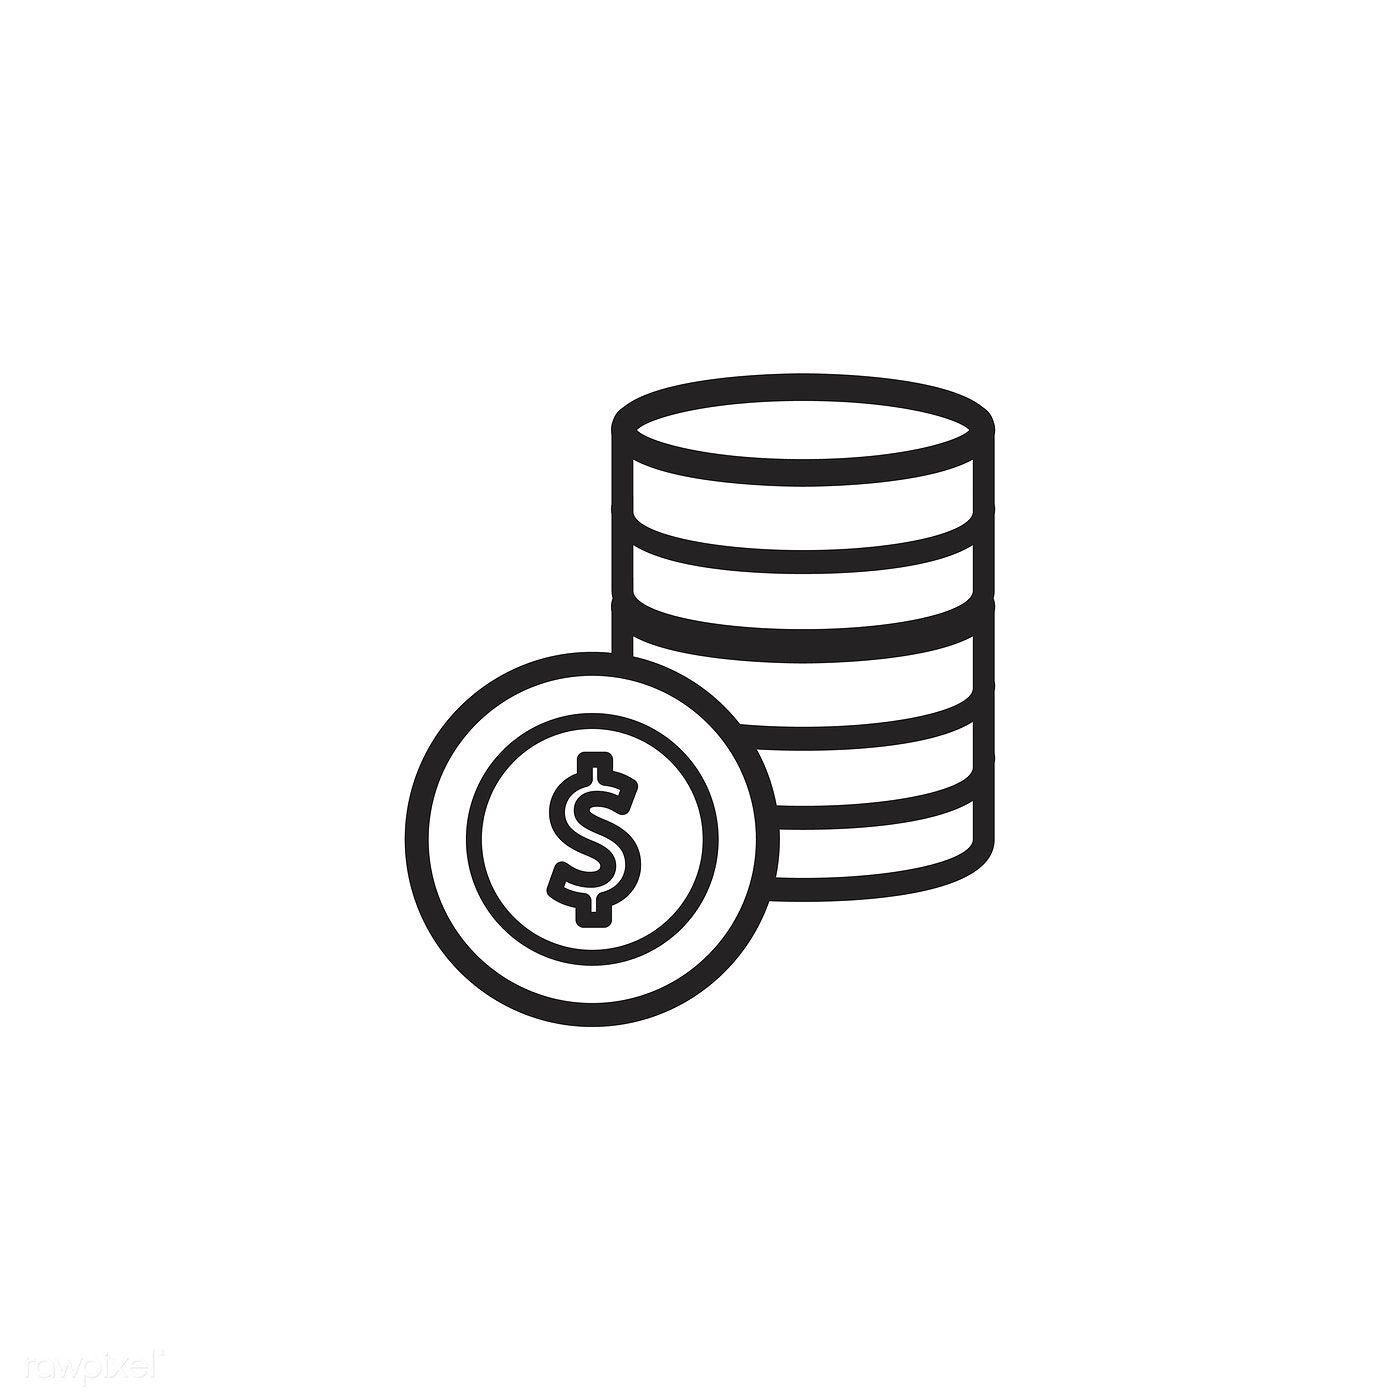 Money Icon Vector Free Image By Rawpixel Com Money Icons Vector Free Money Logo